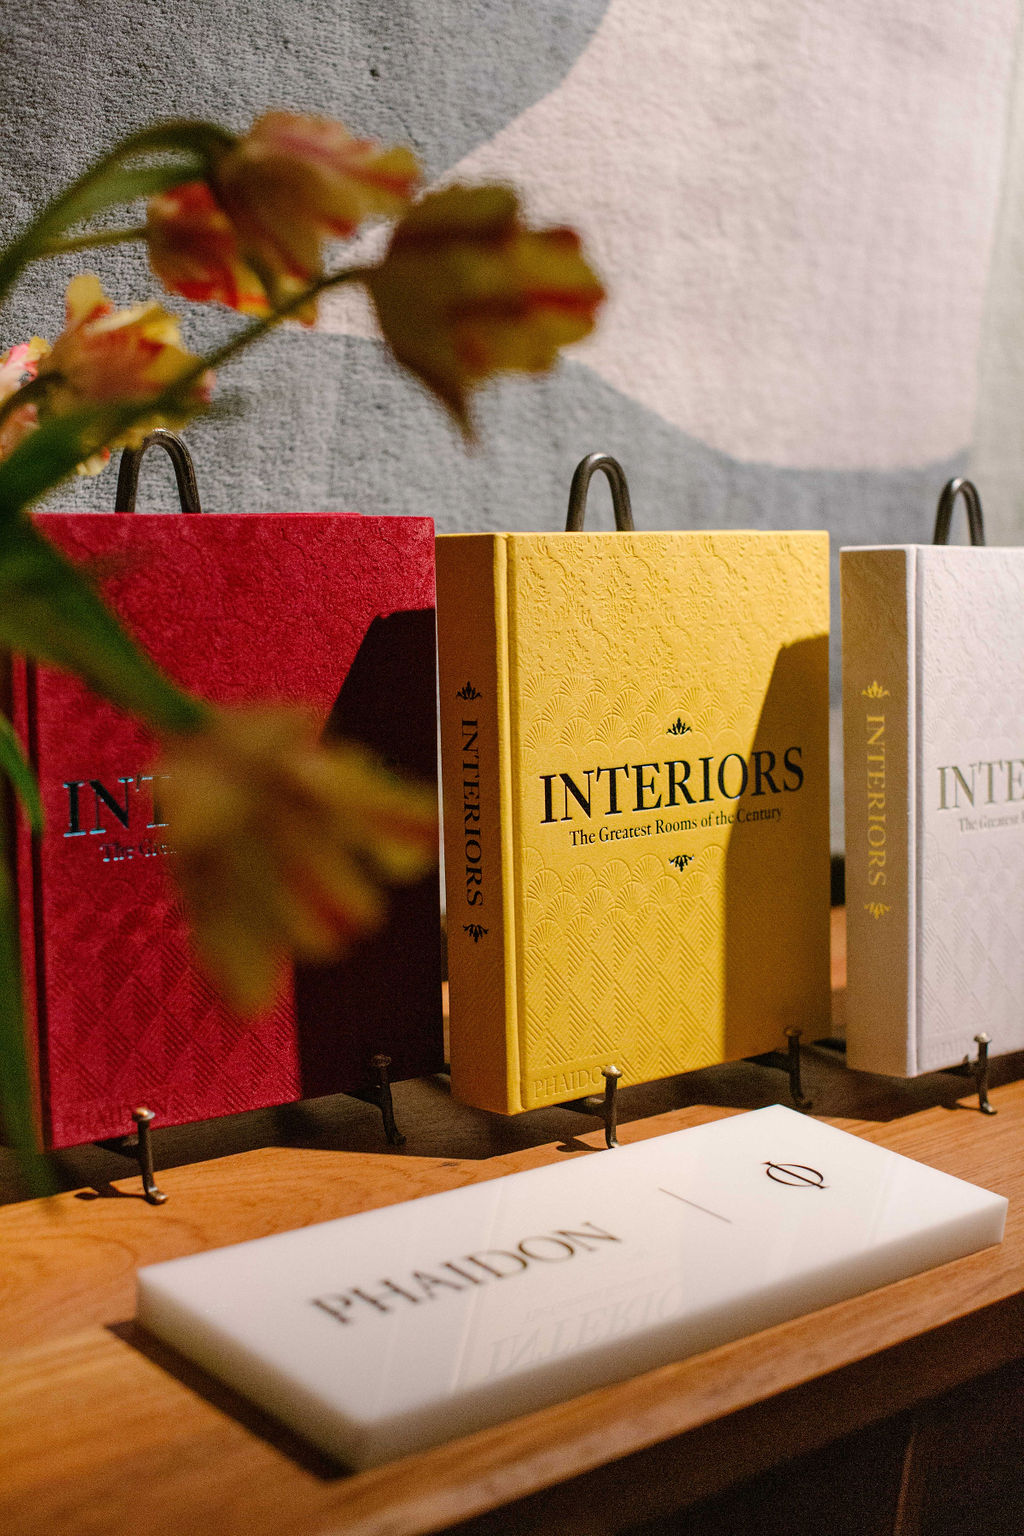 The launch for Interiors: The Greatest Rooms of the Century at Roman and Williams Guild New York